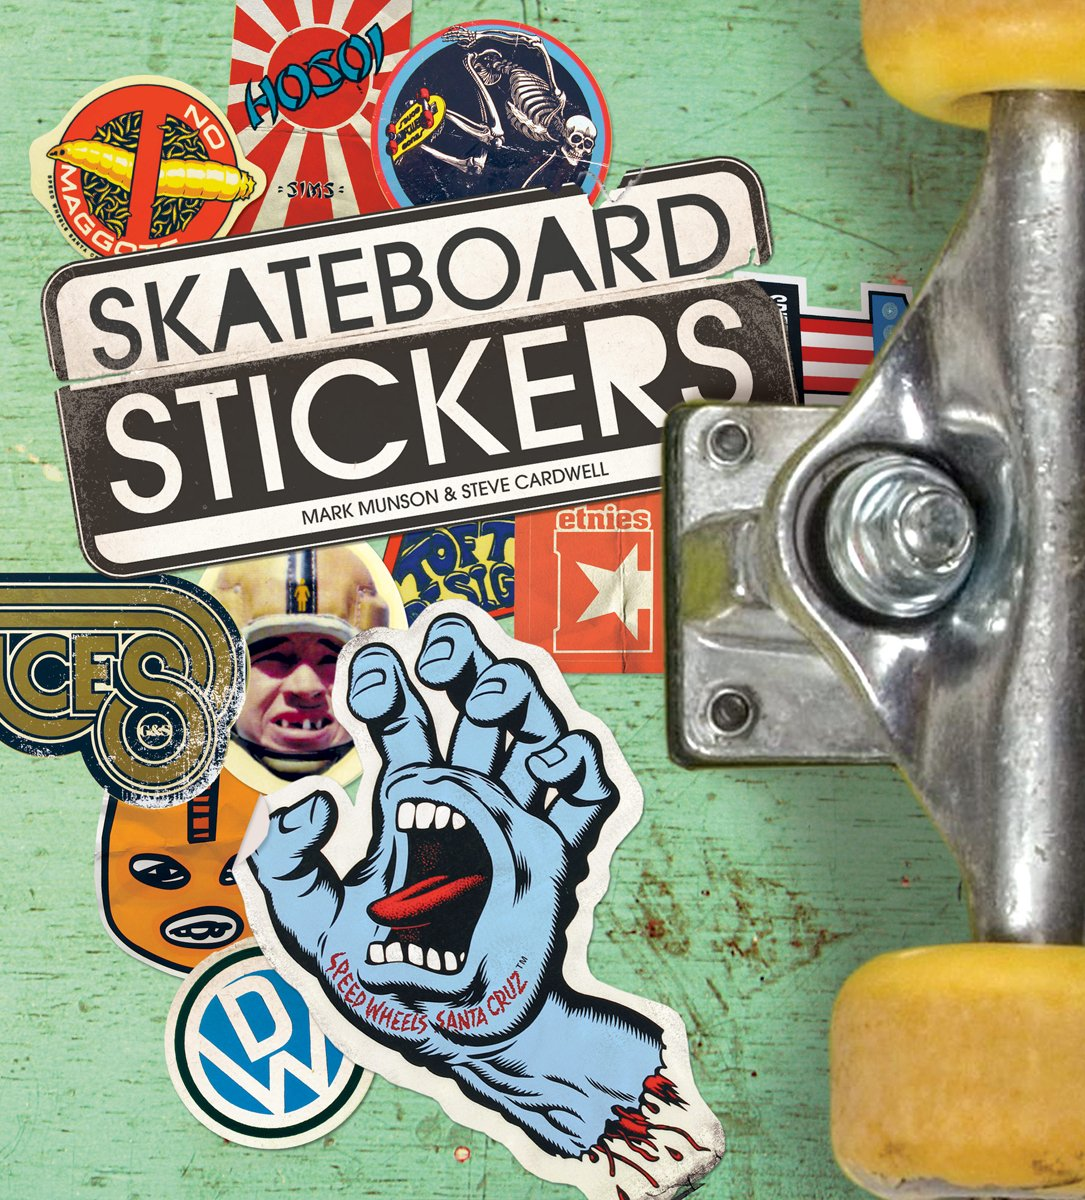 Skateboard stickers amazon co uk steve cardwell 9781856698863 books